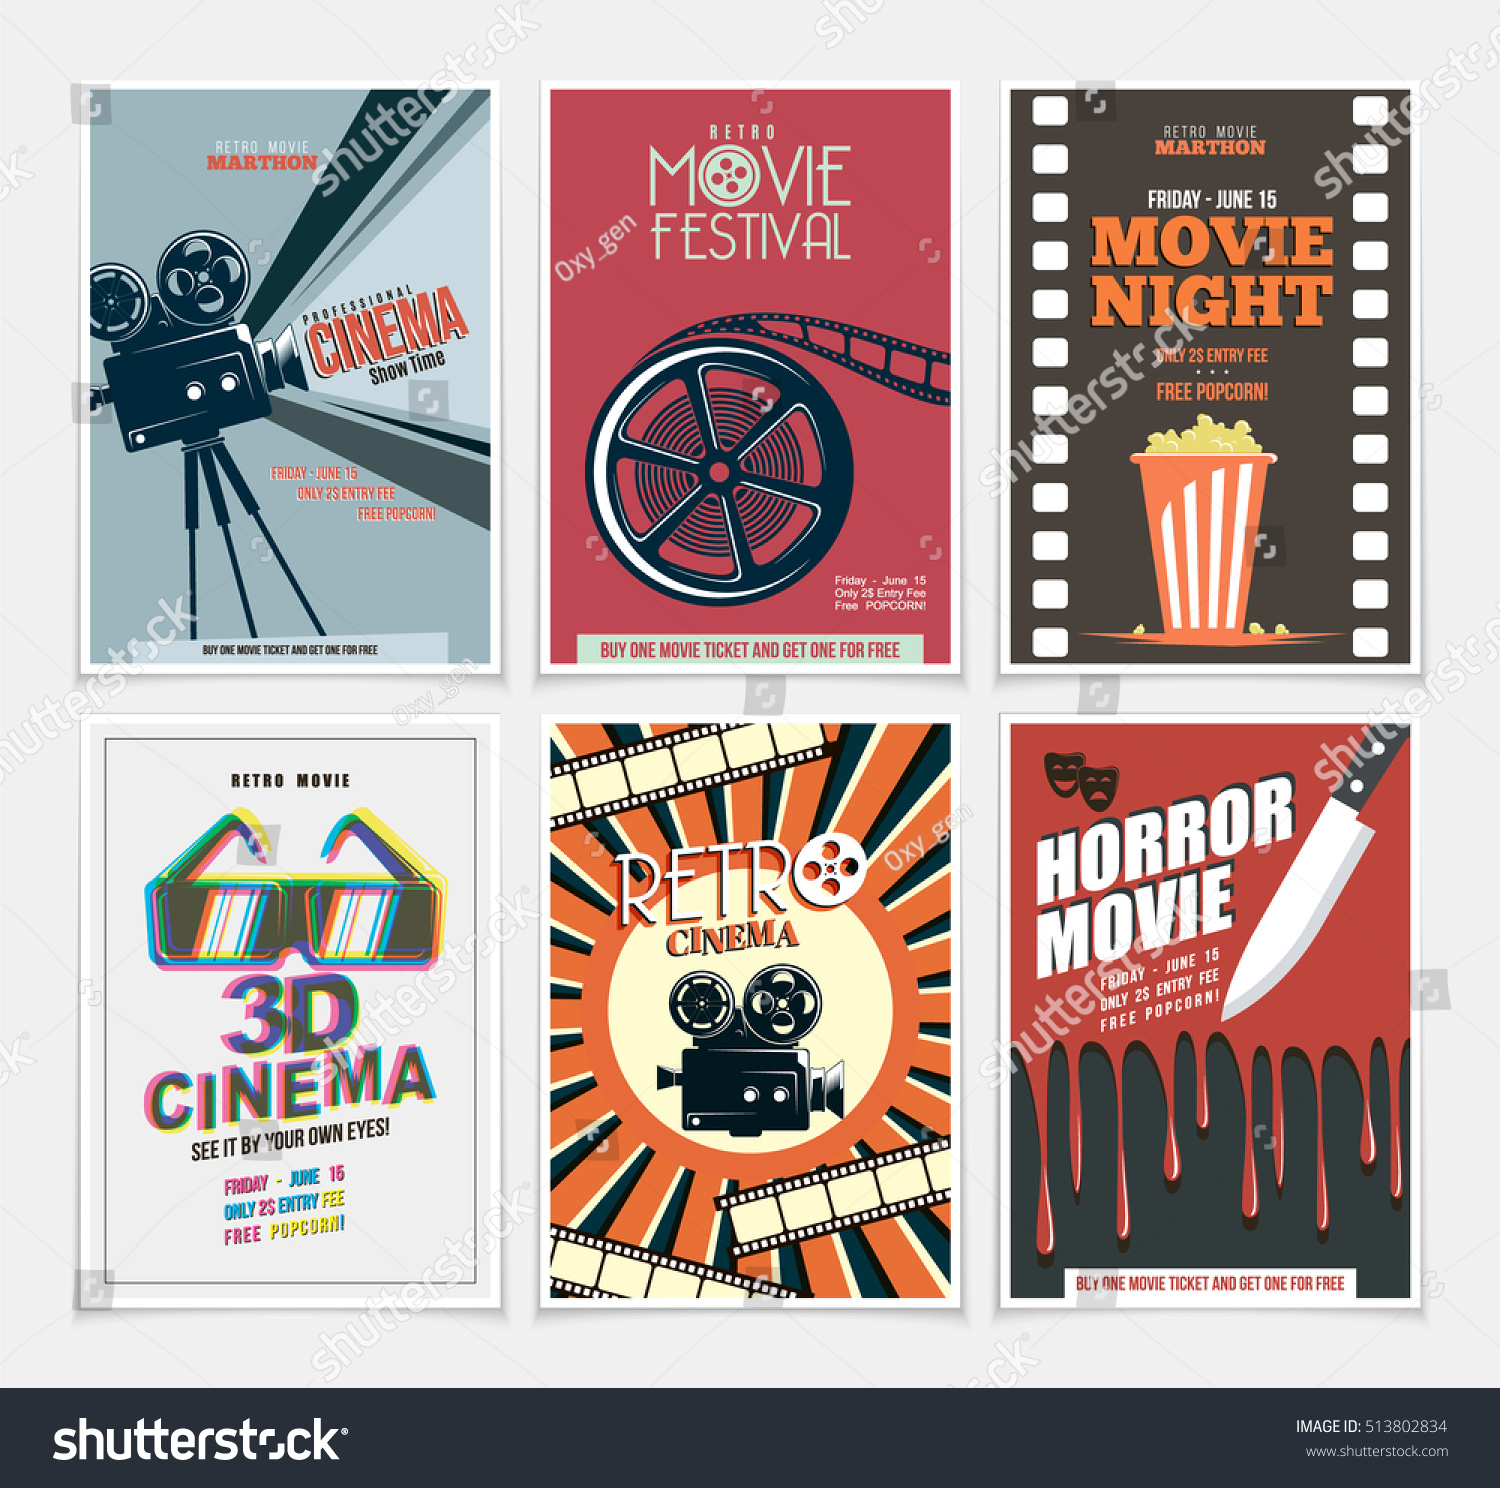 Strip Show together with Movie Retro Posters Flyers Set Vintage 513802834 further Movie Night Ticket Template furthermore Shooting Schedule Stripboard likewise Projectors 158484. on free movie night film strip template